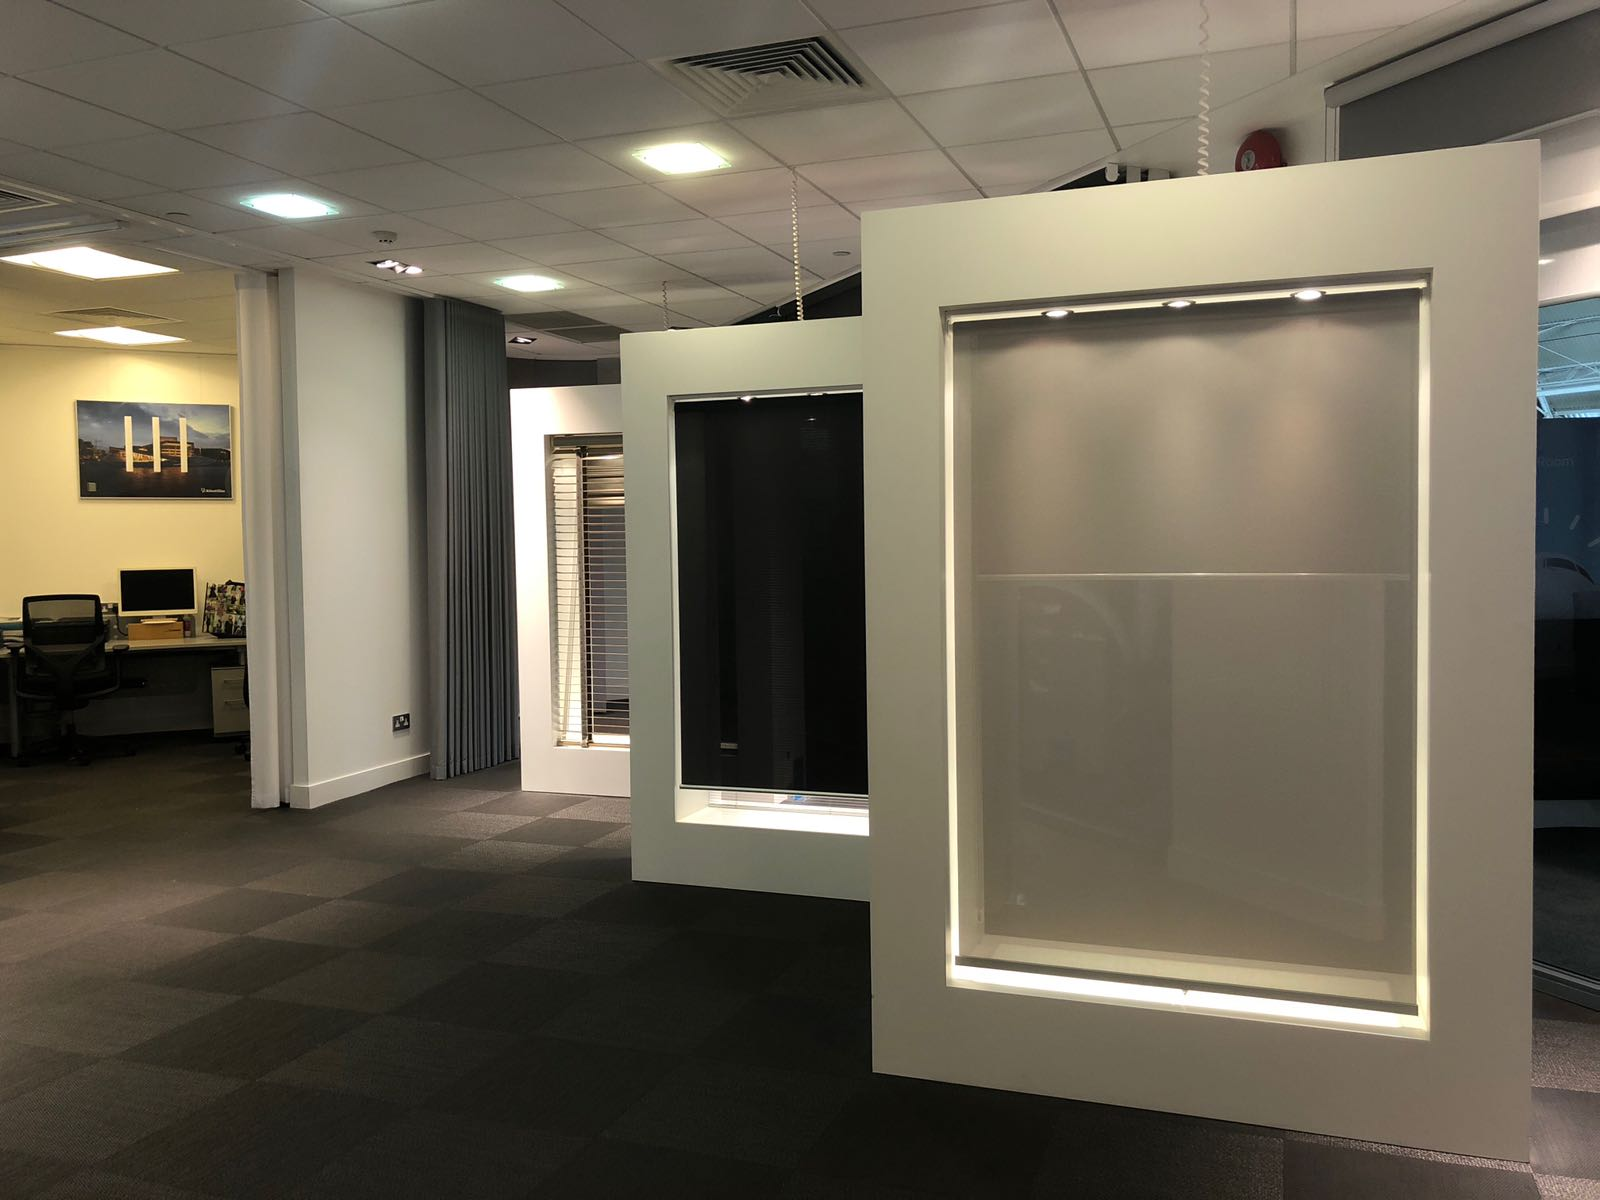 Silent Gliss Business Centre London - Blinds showcases